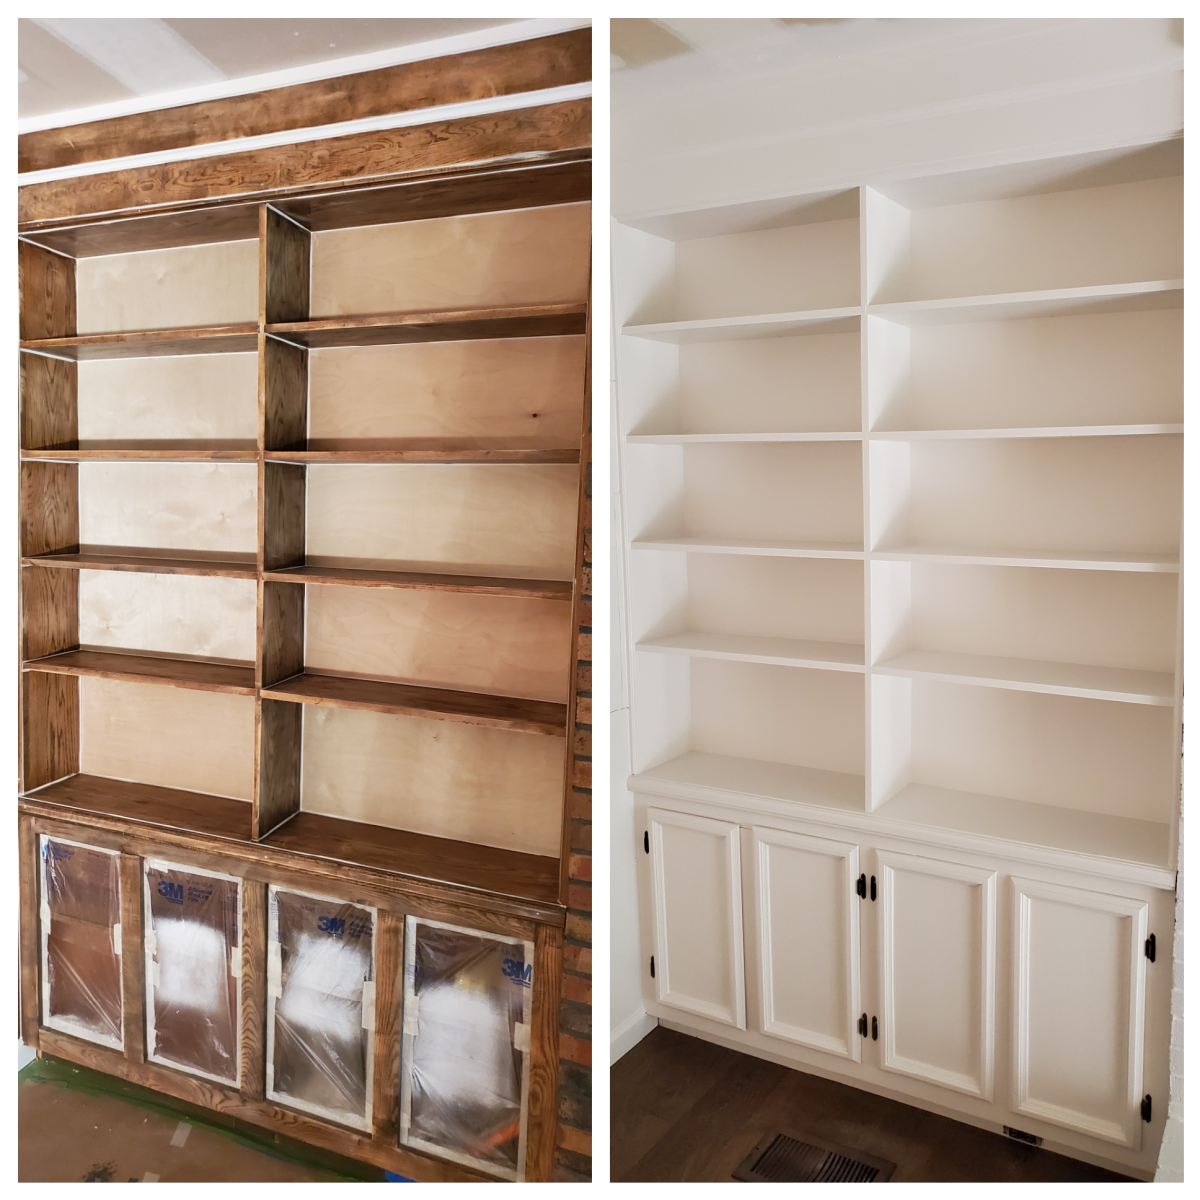 Tips for Spray Painting Bookshelves